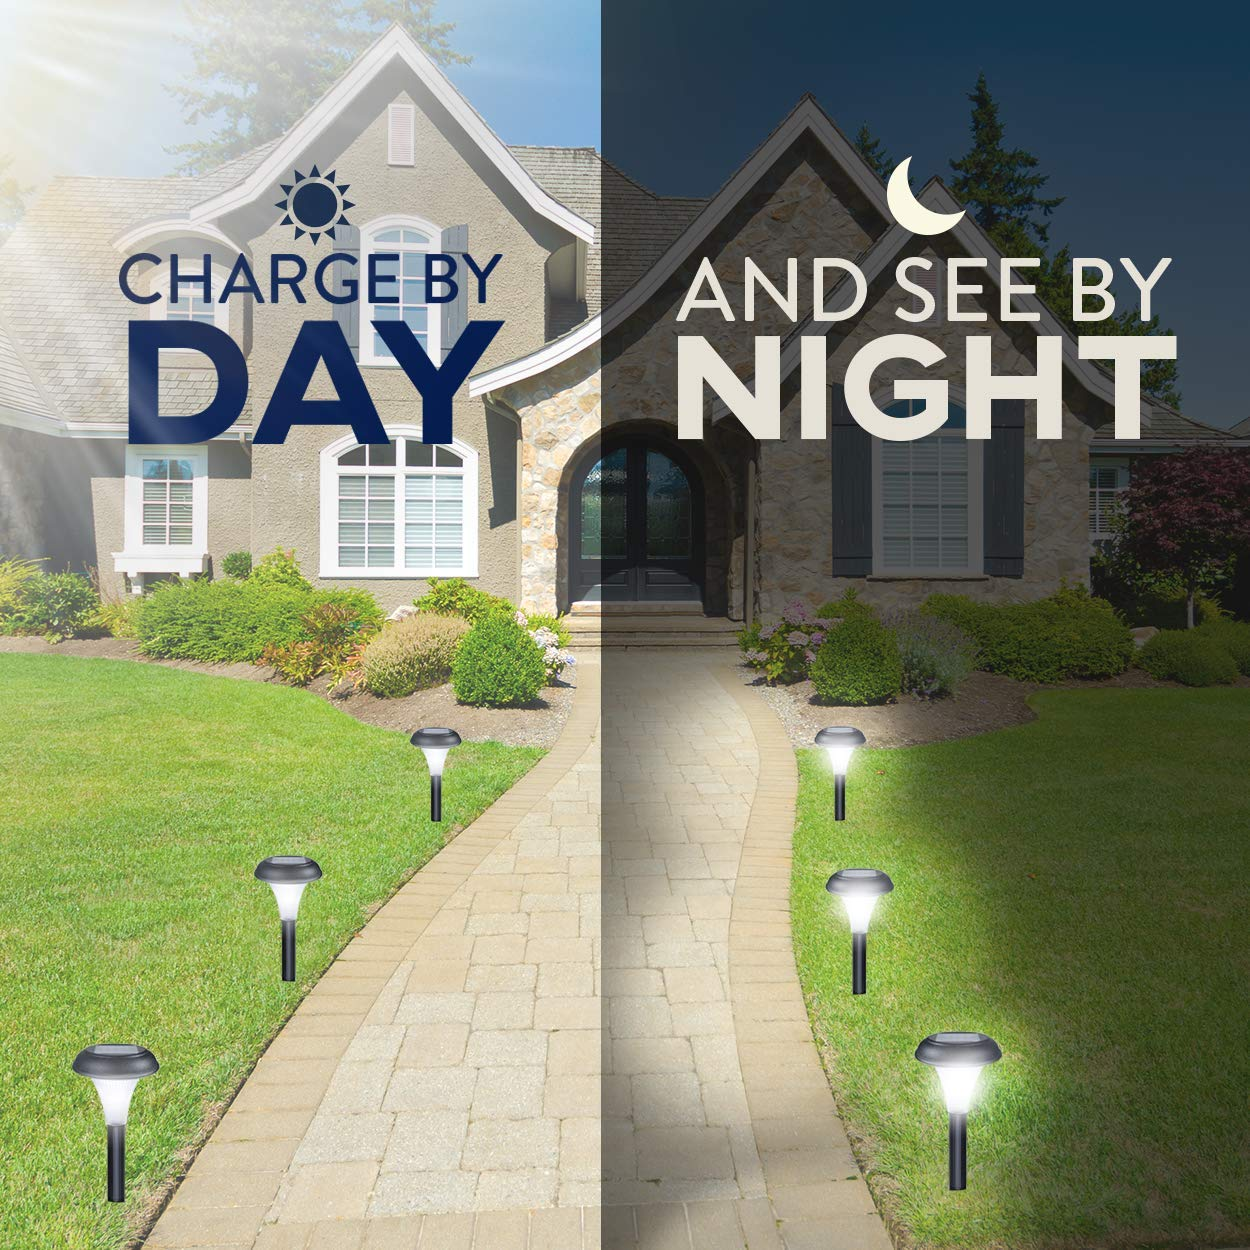 Lawn Yard Decor Double Waterproof Seal Large Led Landscape Outside Post Lighting Lamps Path Patio 10 Brightest Light Set For Walkway Garden GardenBliss Best Solar Lights For Outdoor Pathway